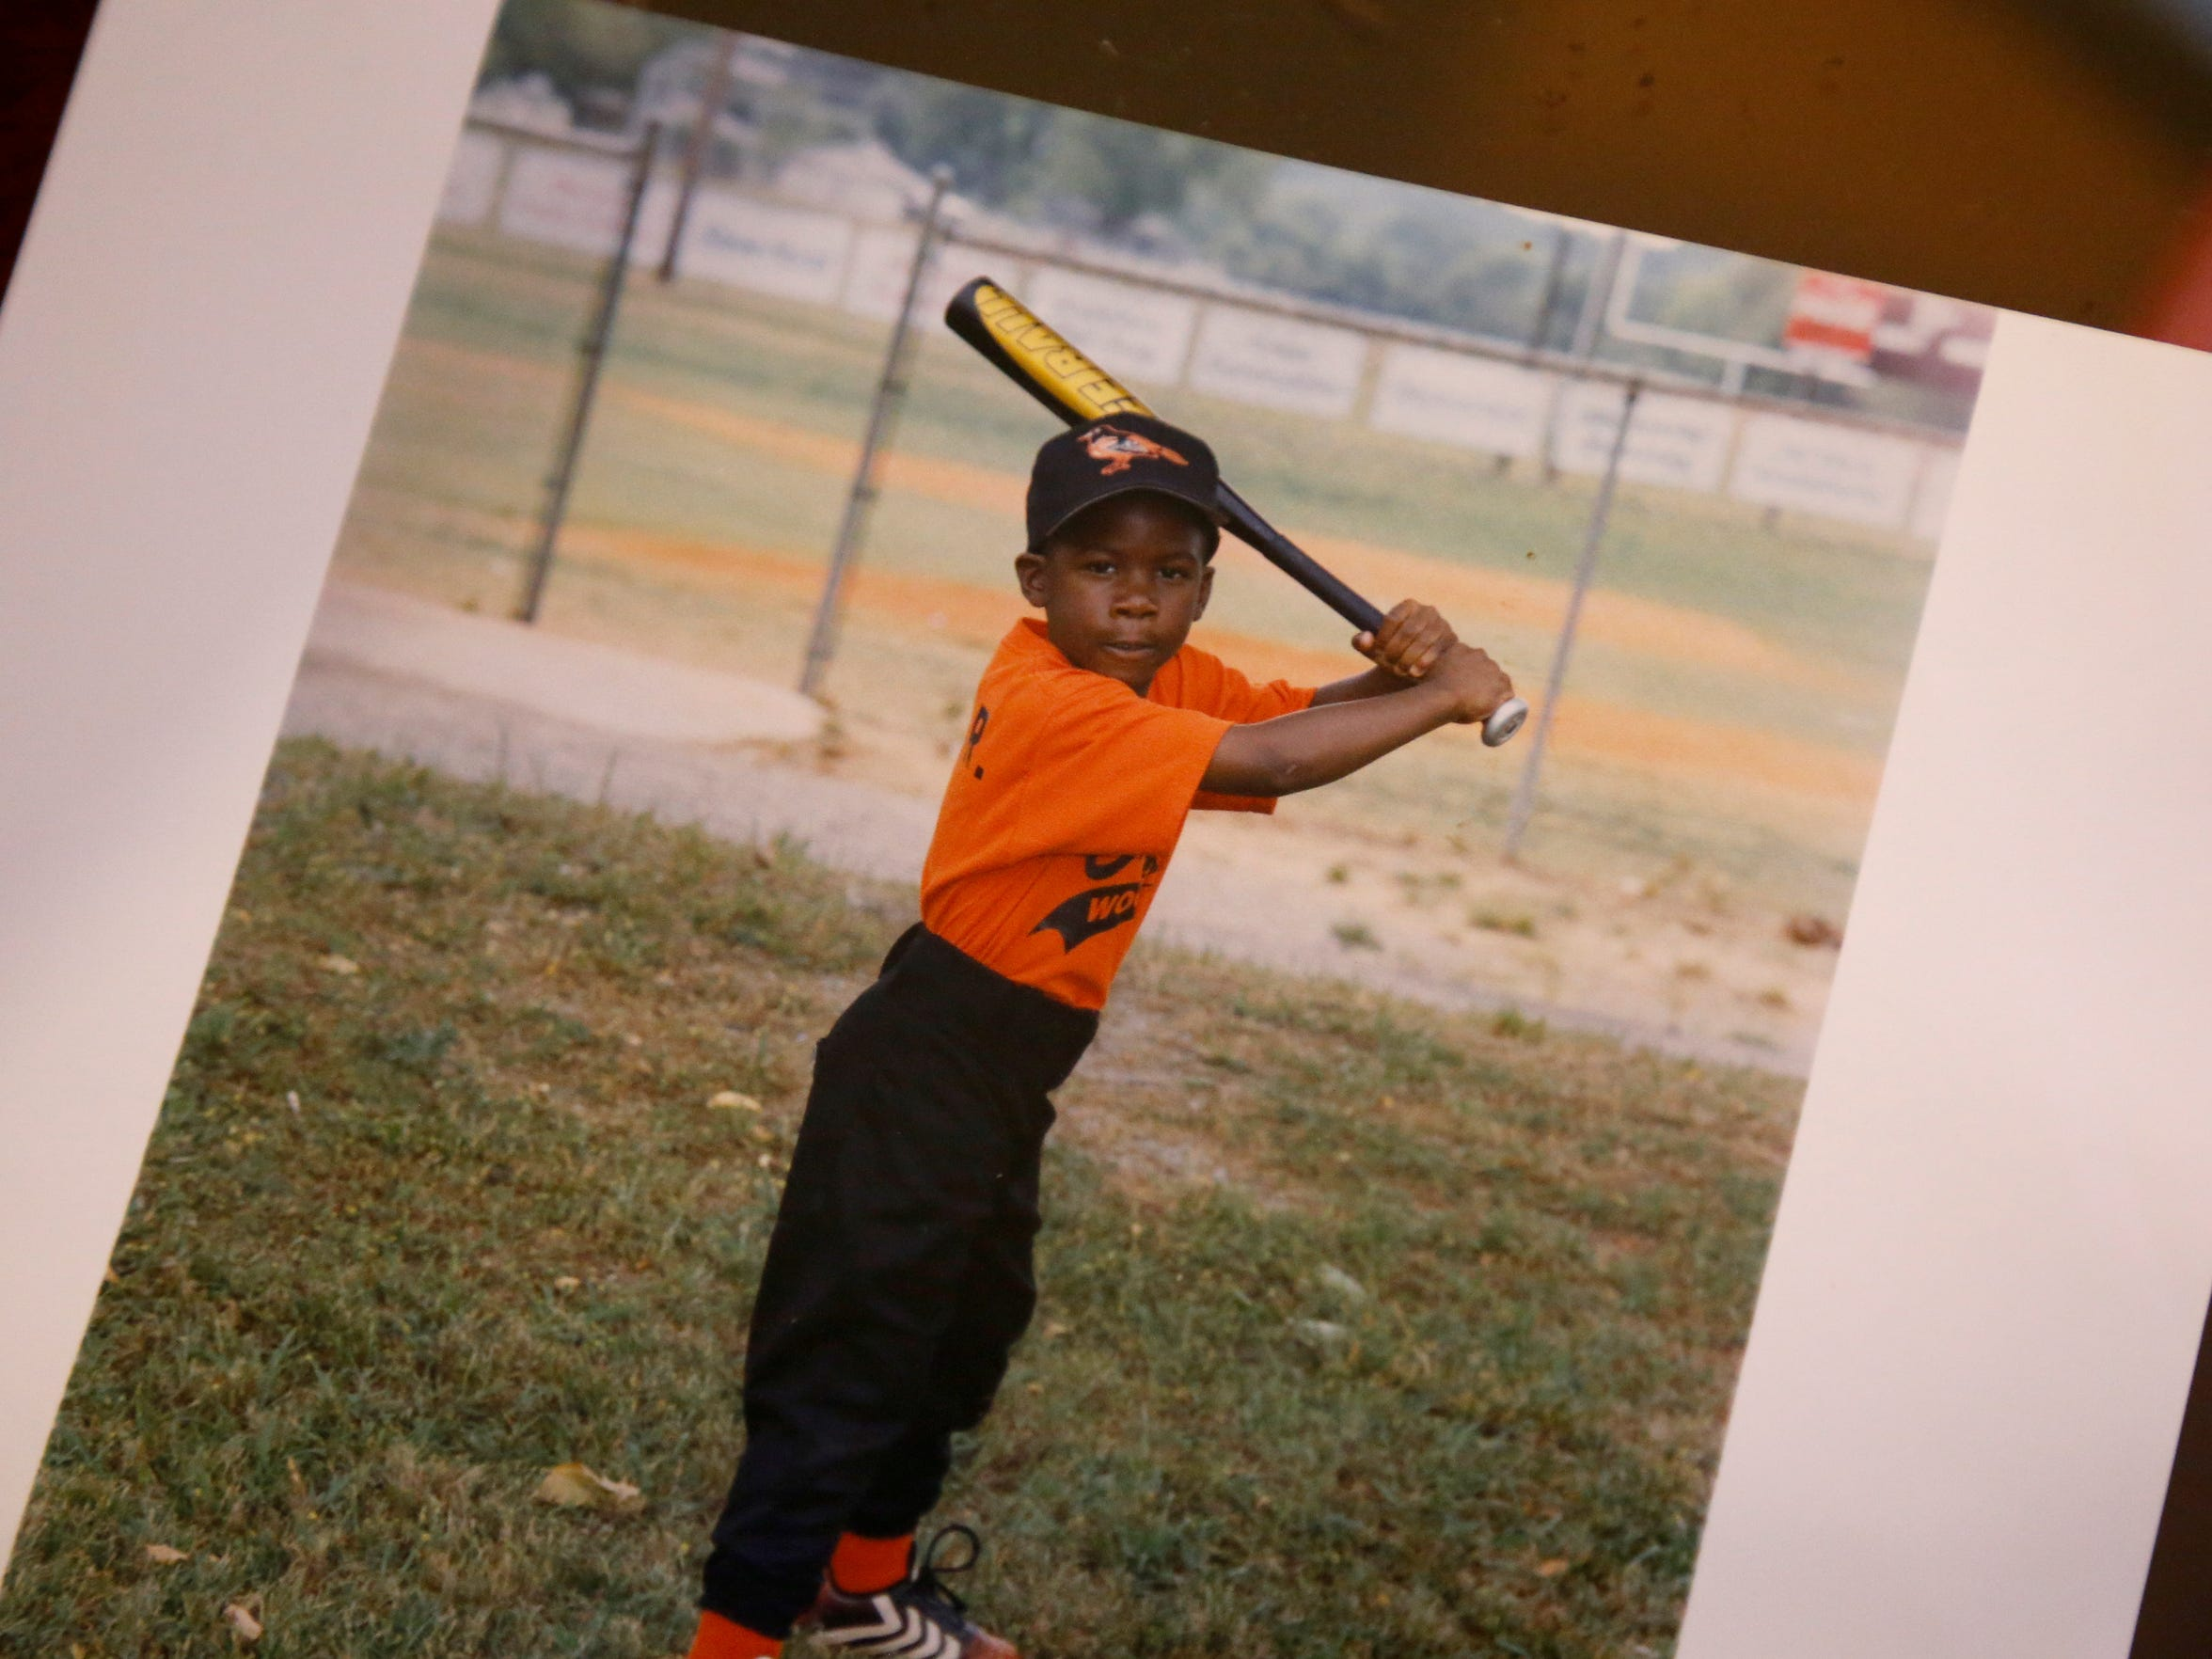 Young Shed Long playing baseball at his parents home in Talladega, Ala.